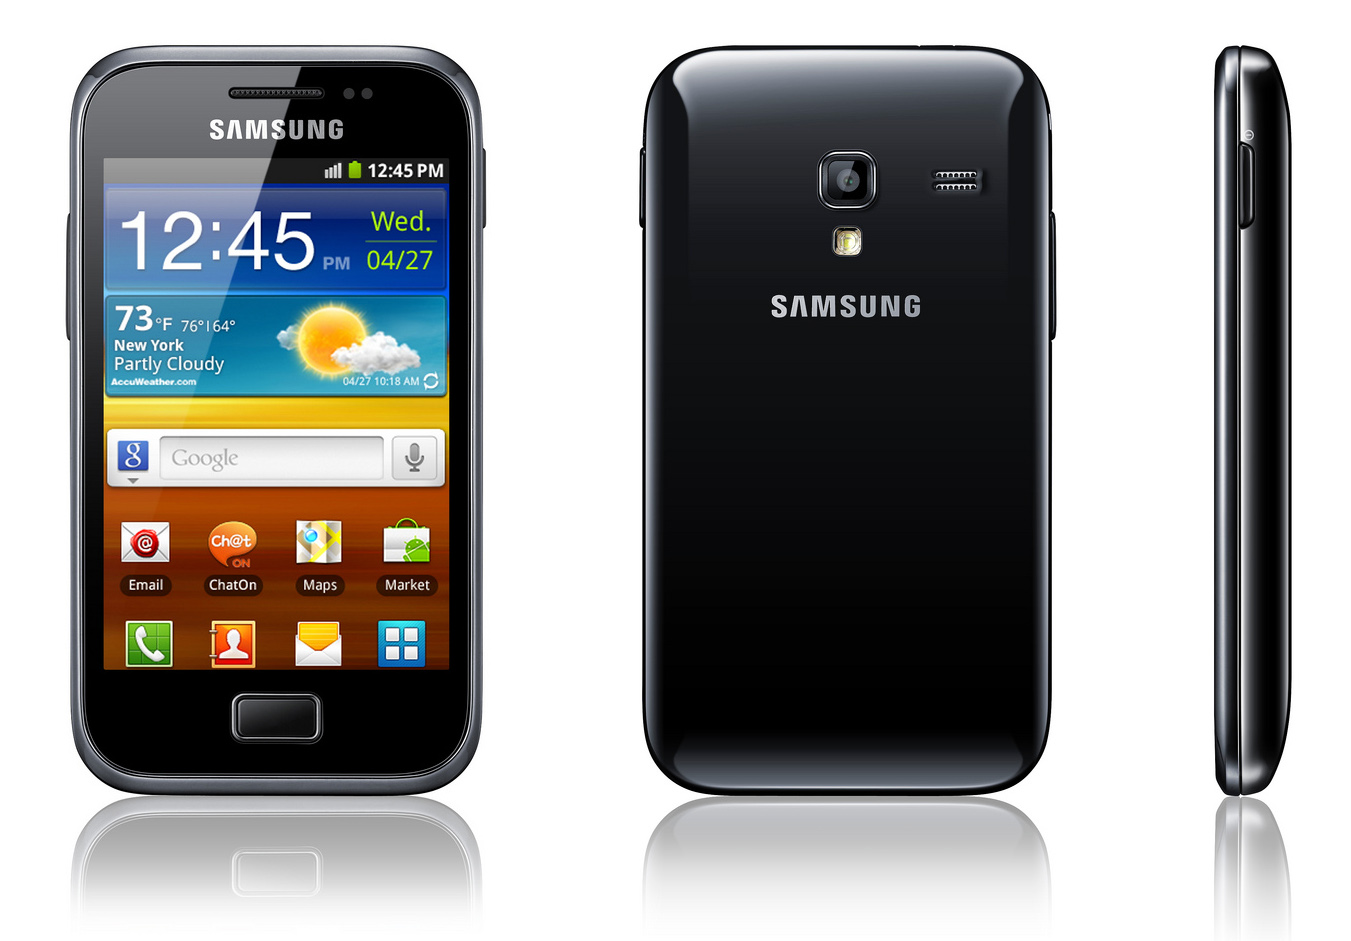 samsung galaxy ace plus 1ghz upgrade android 2 3 eurodroid. Black Bedroom Furniture Sets. Home Design Ideas